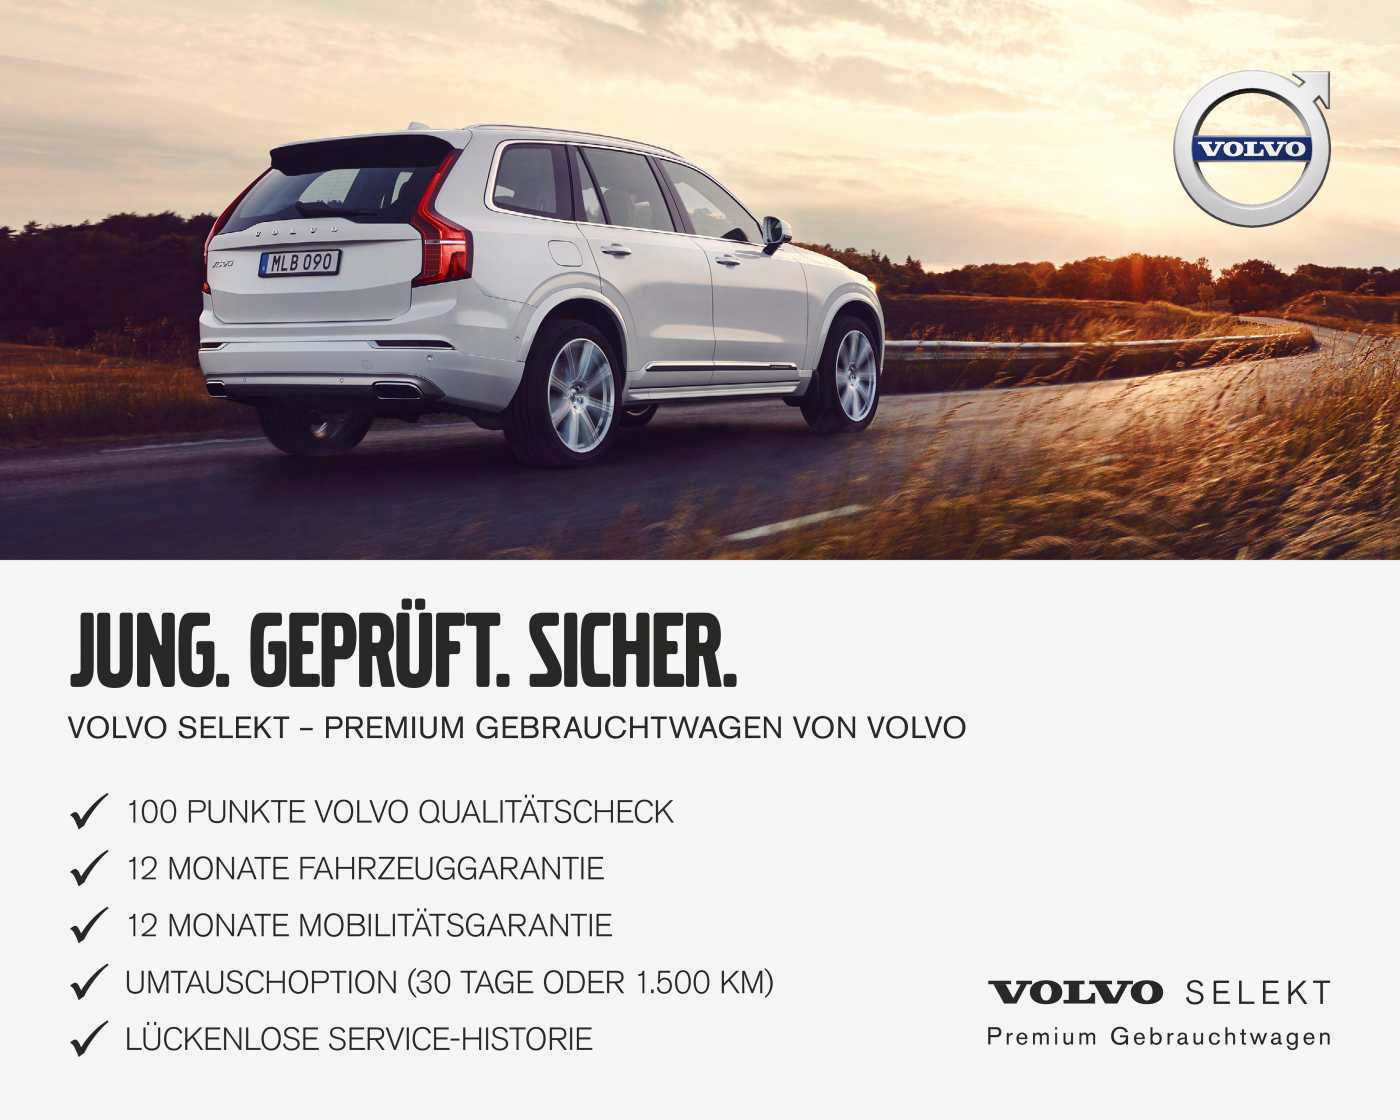 VOLVO - XC90 D5 AWD Geartronic Inscription AHK/Bowers&Wi